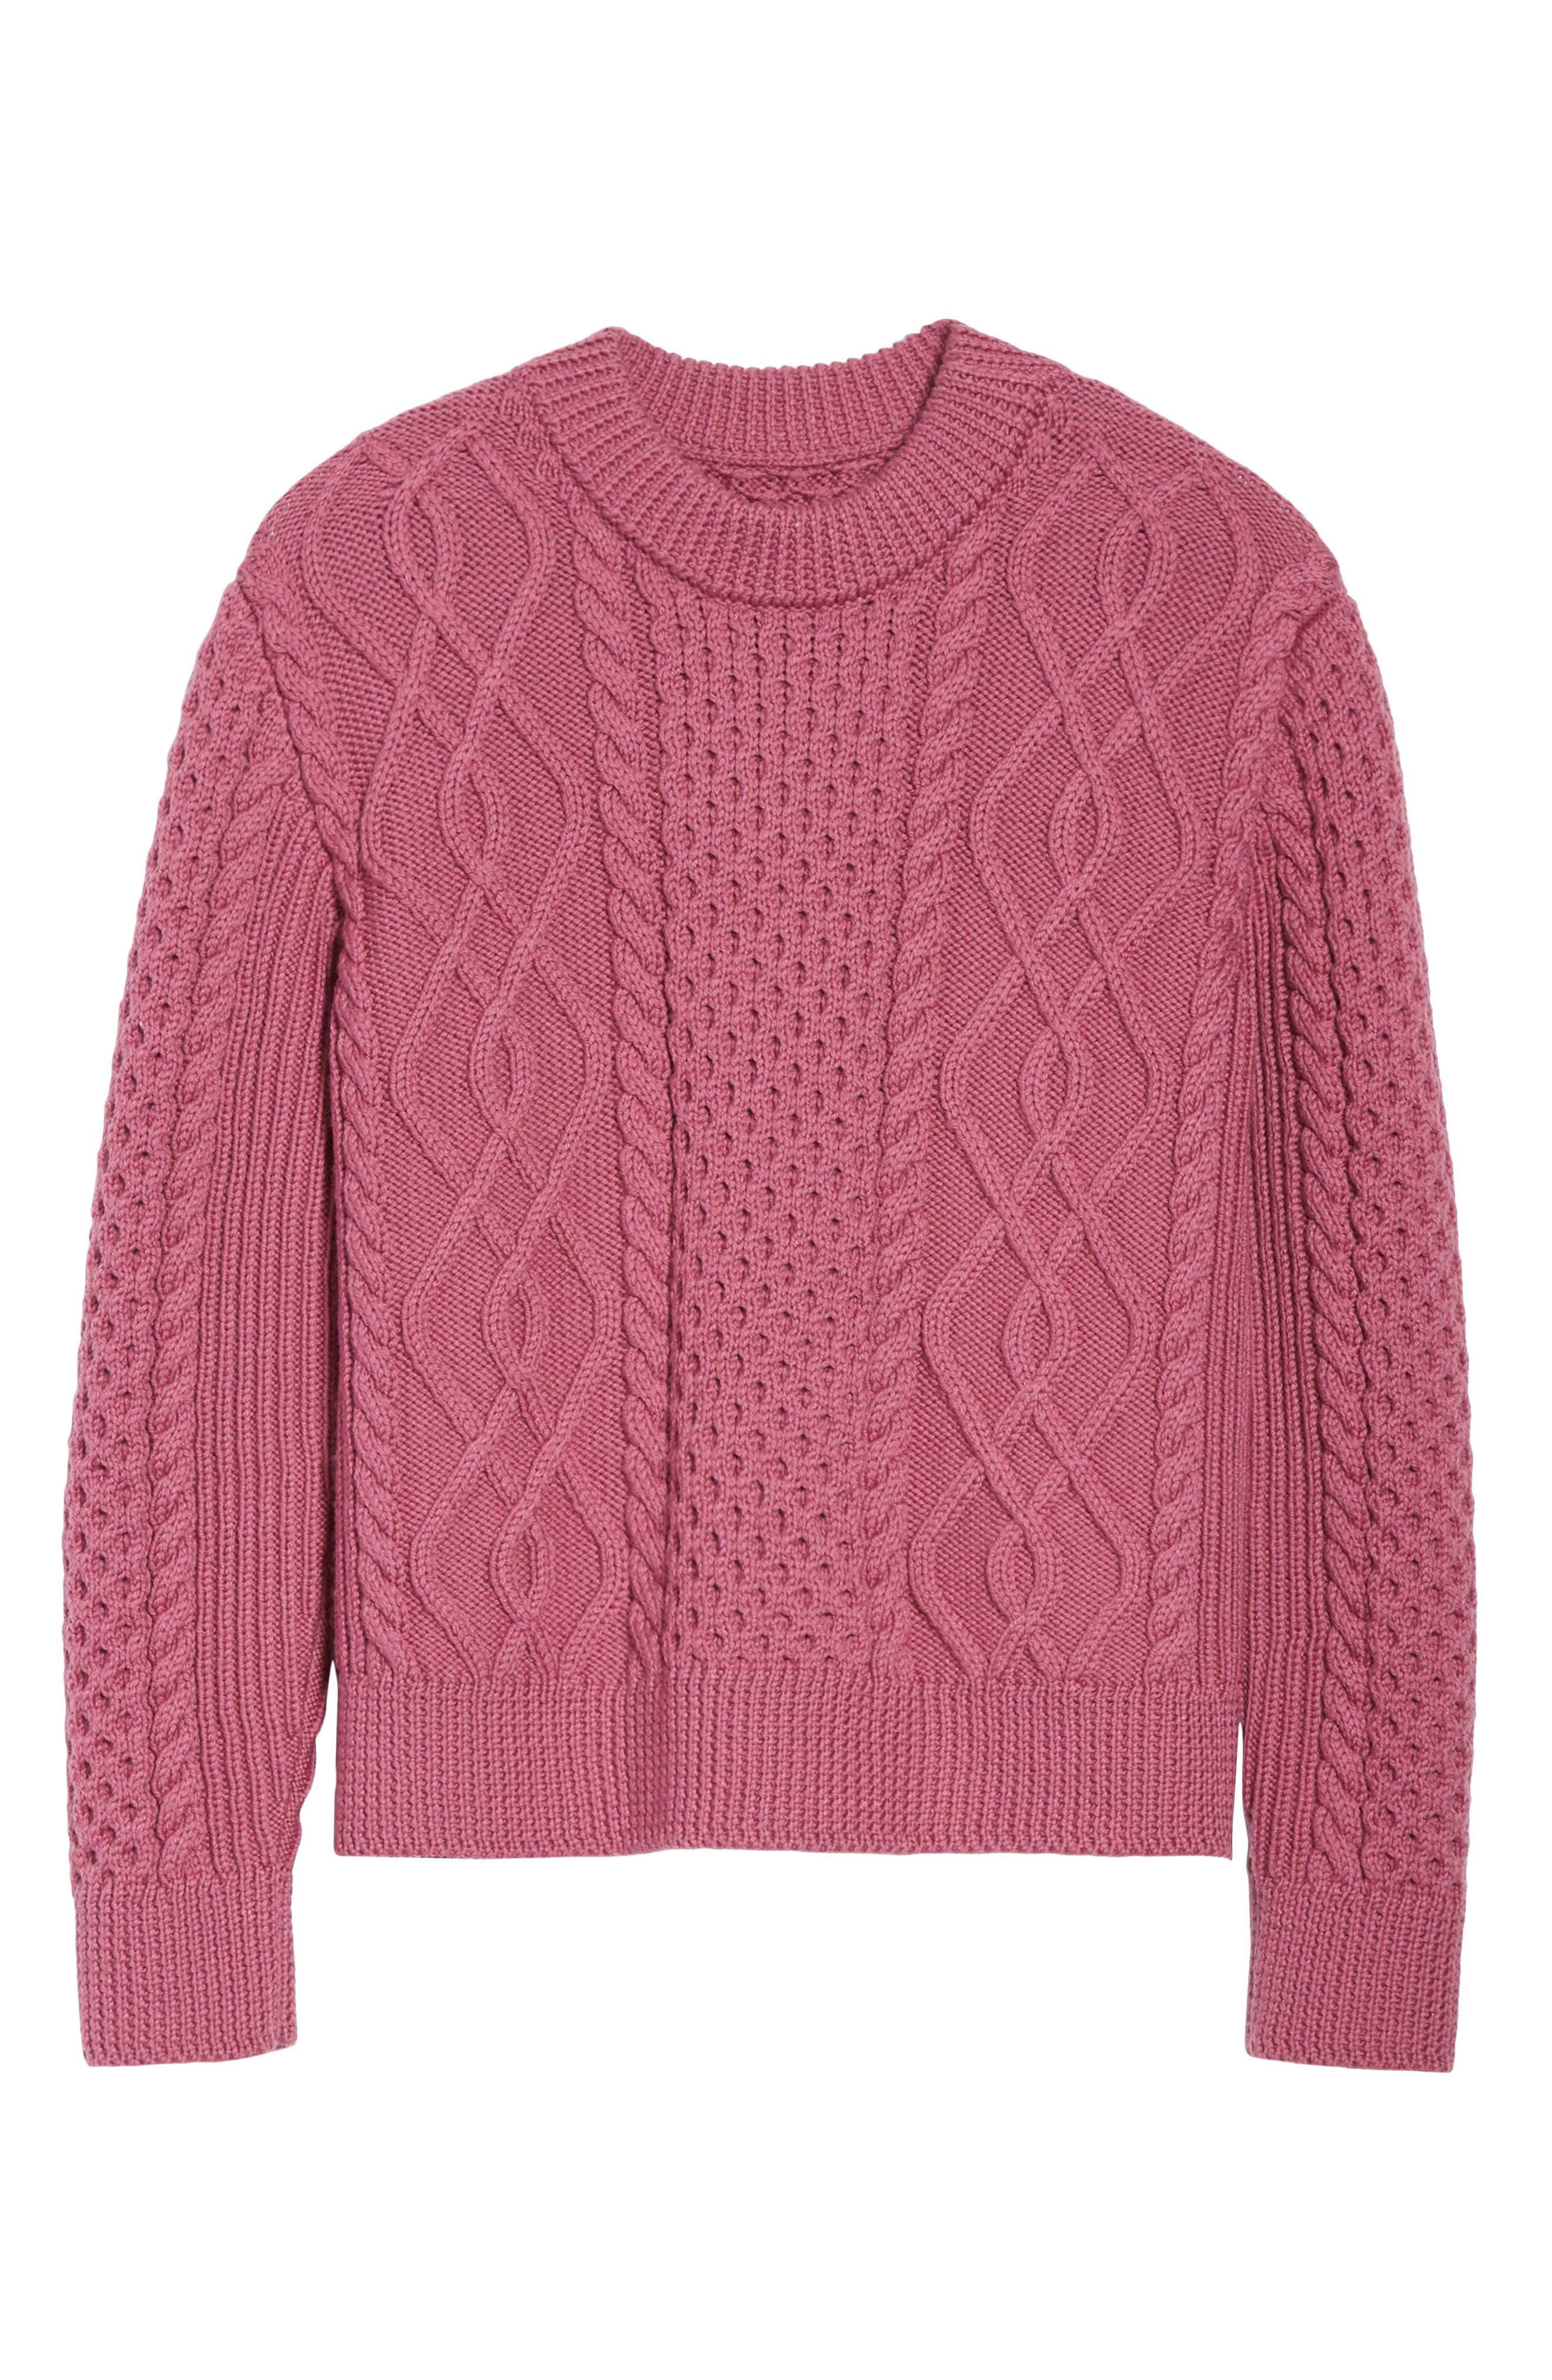 Merino Wool Cable Knit Sweater,                             Alternate thumbnail 6, color,